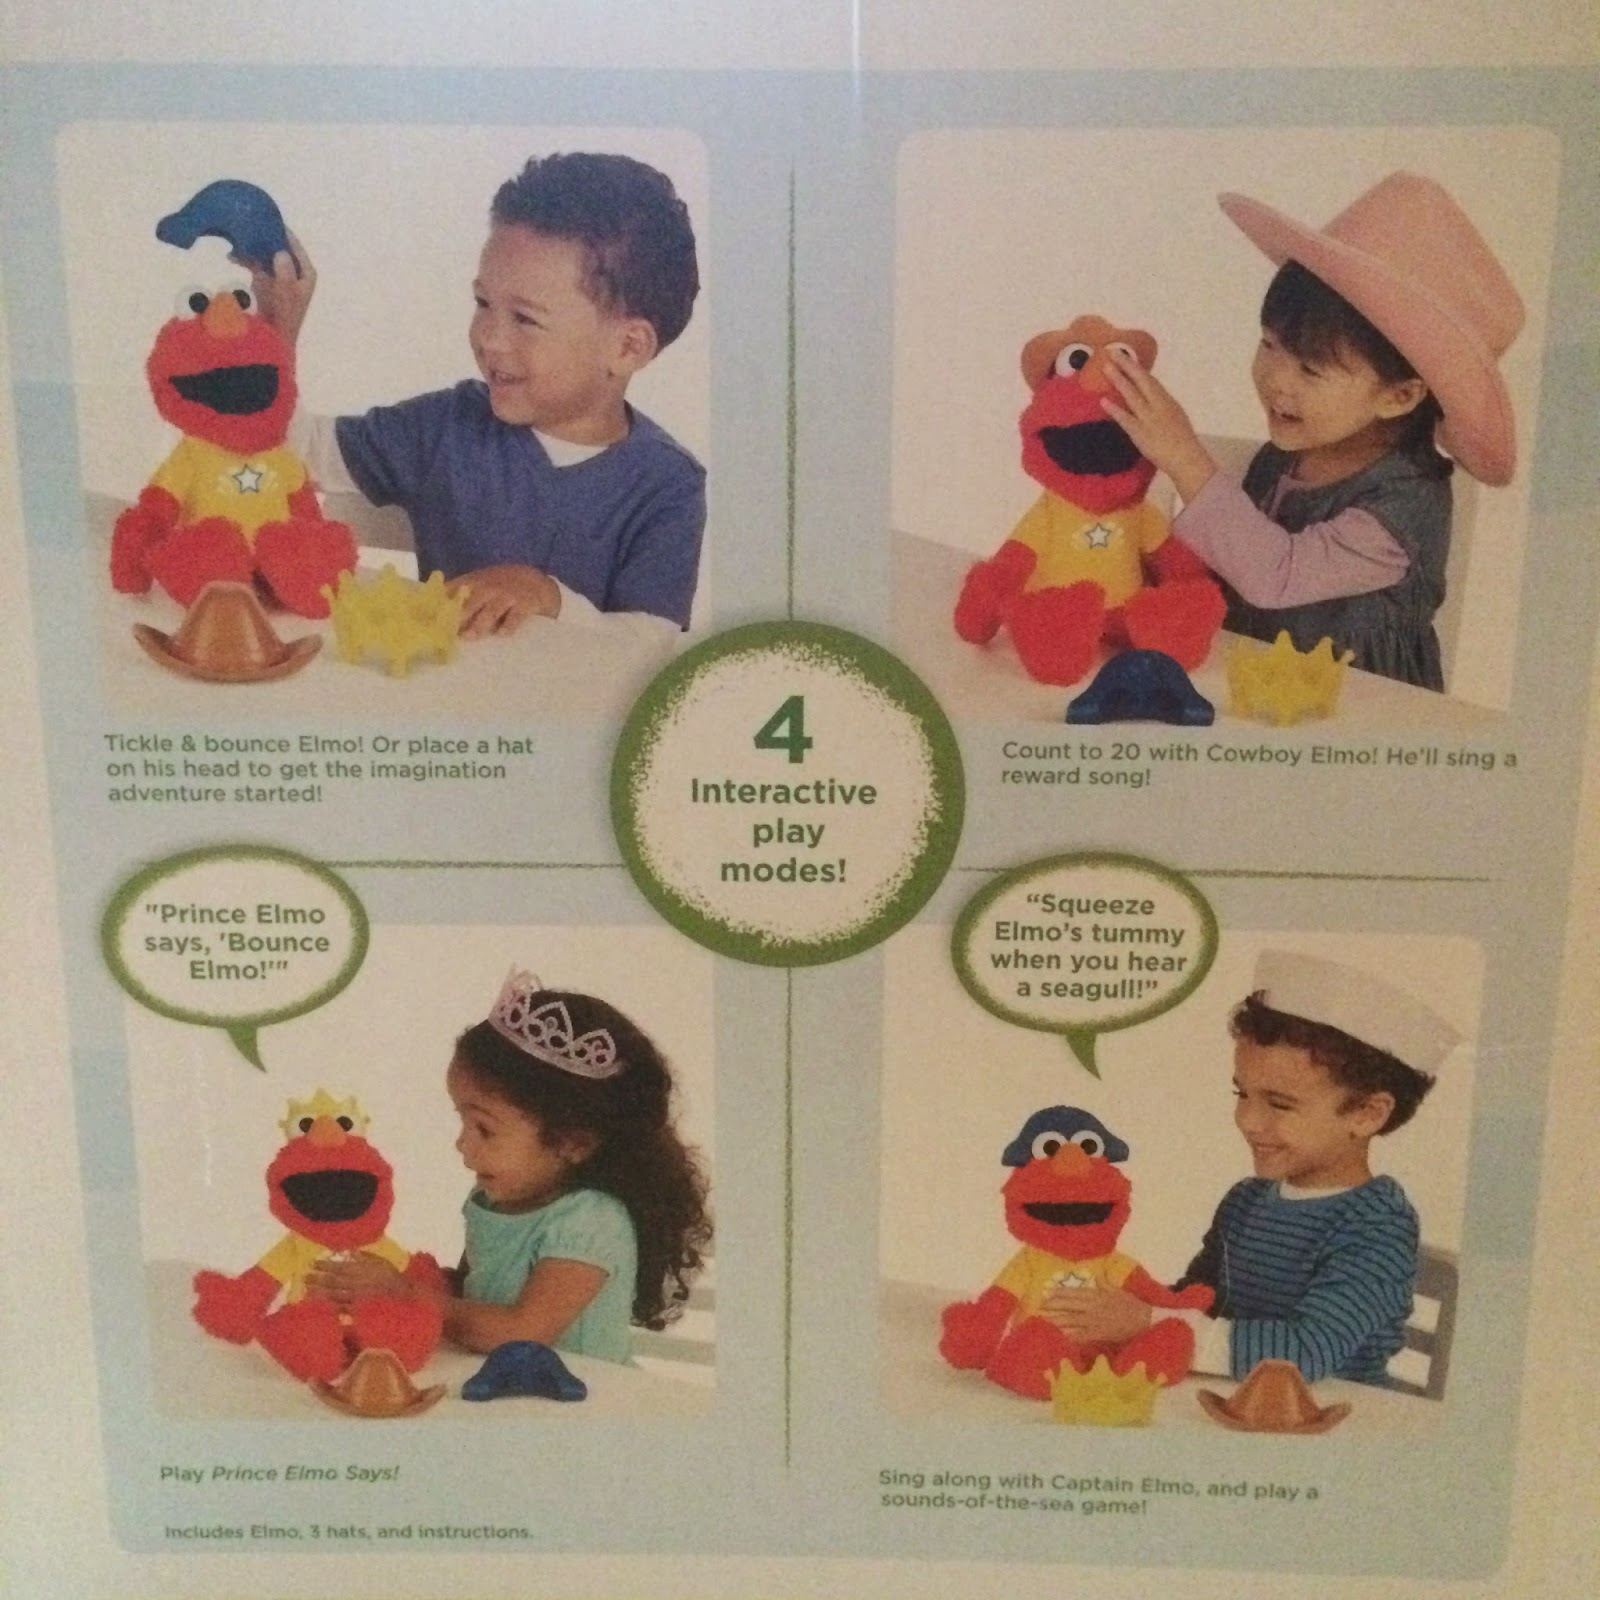 Let's Imagine Elmo toy #review interactive play modes